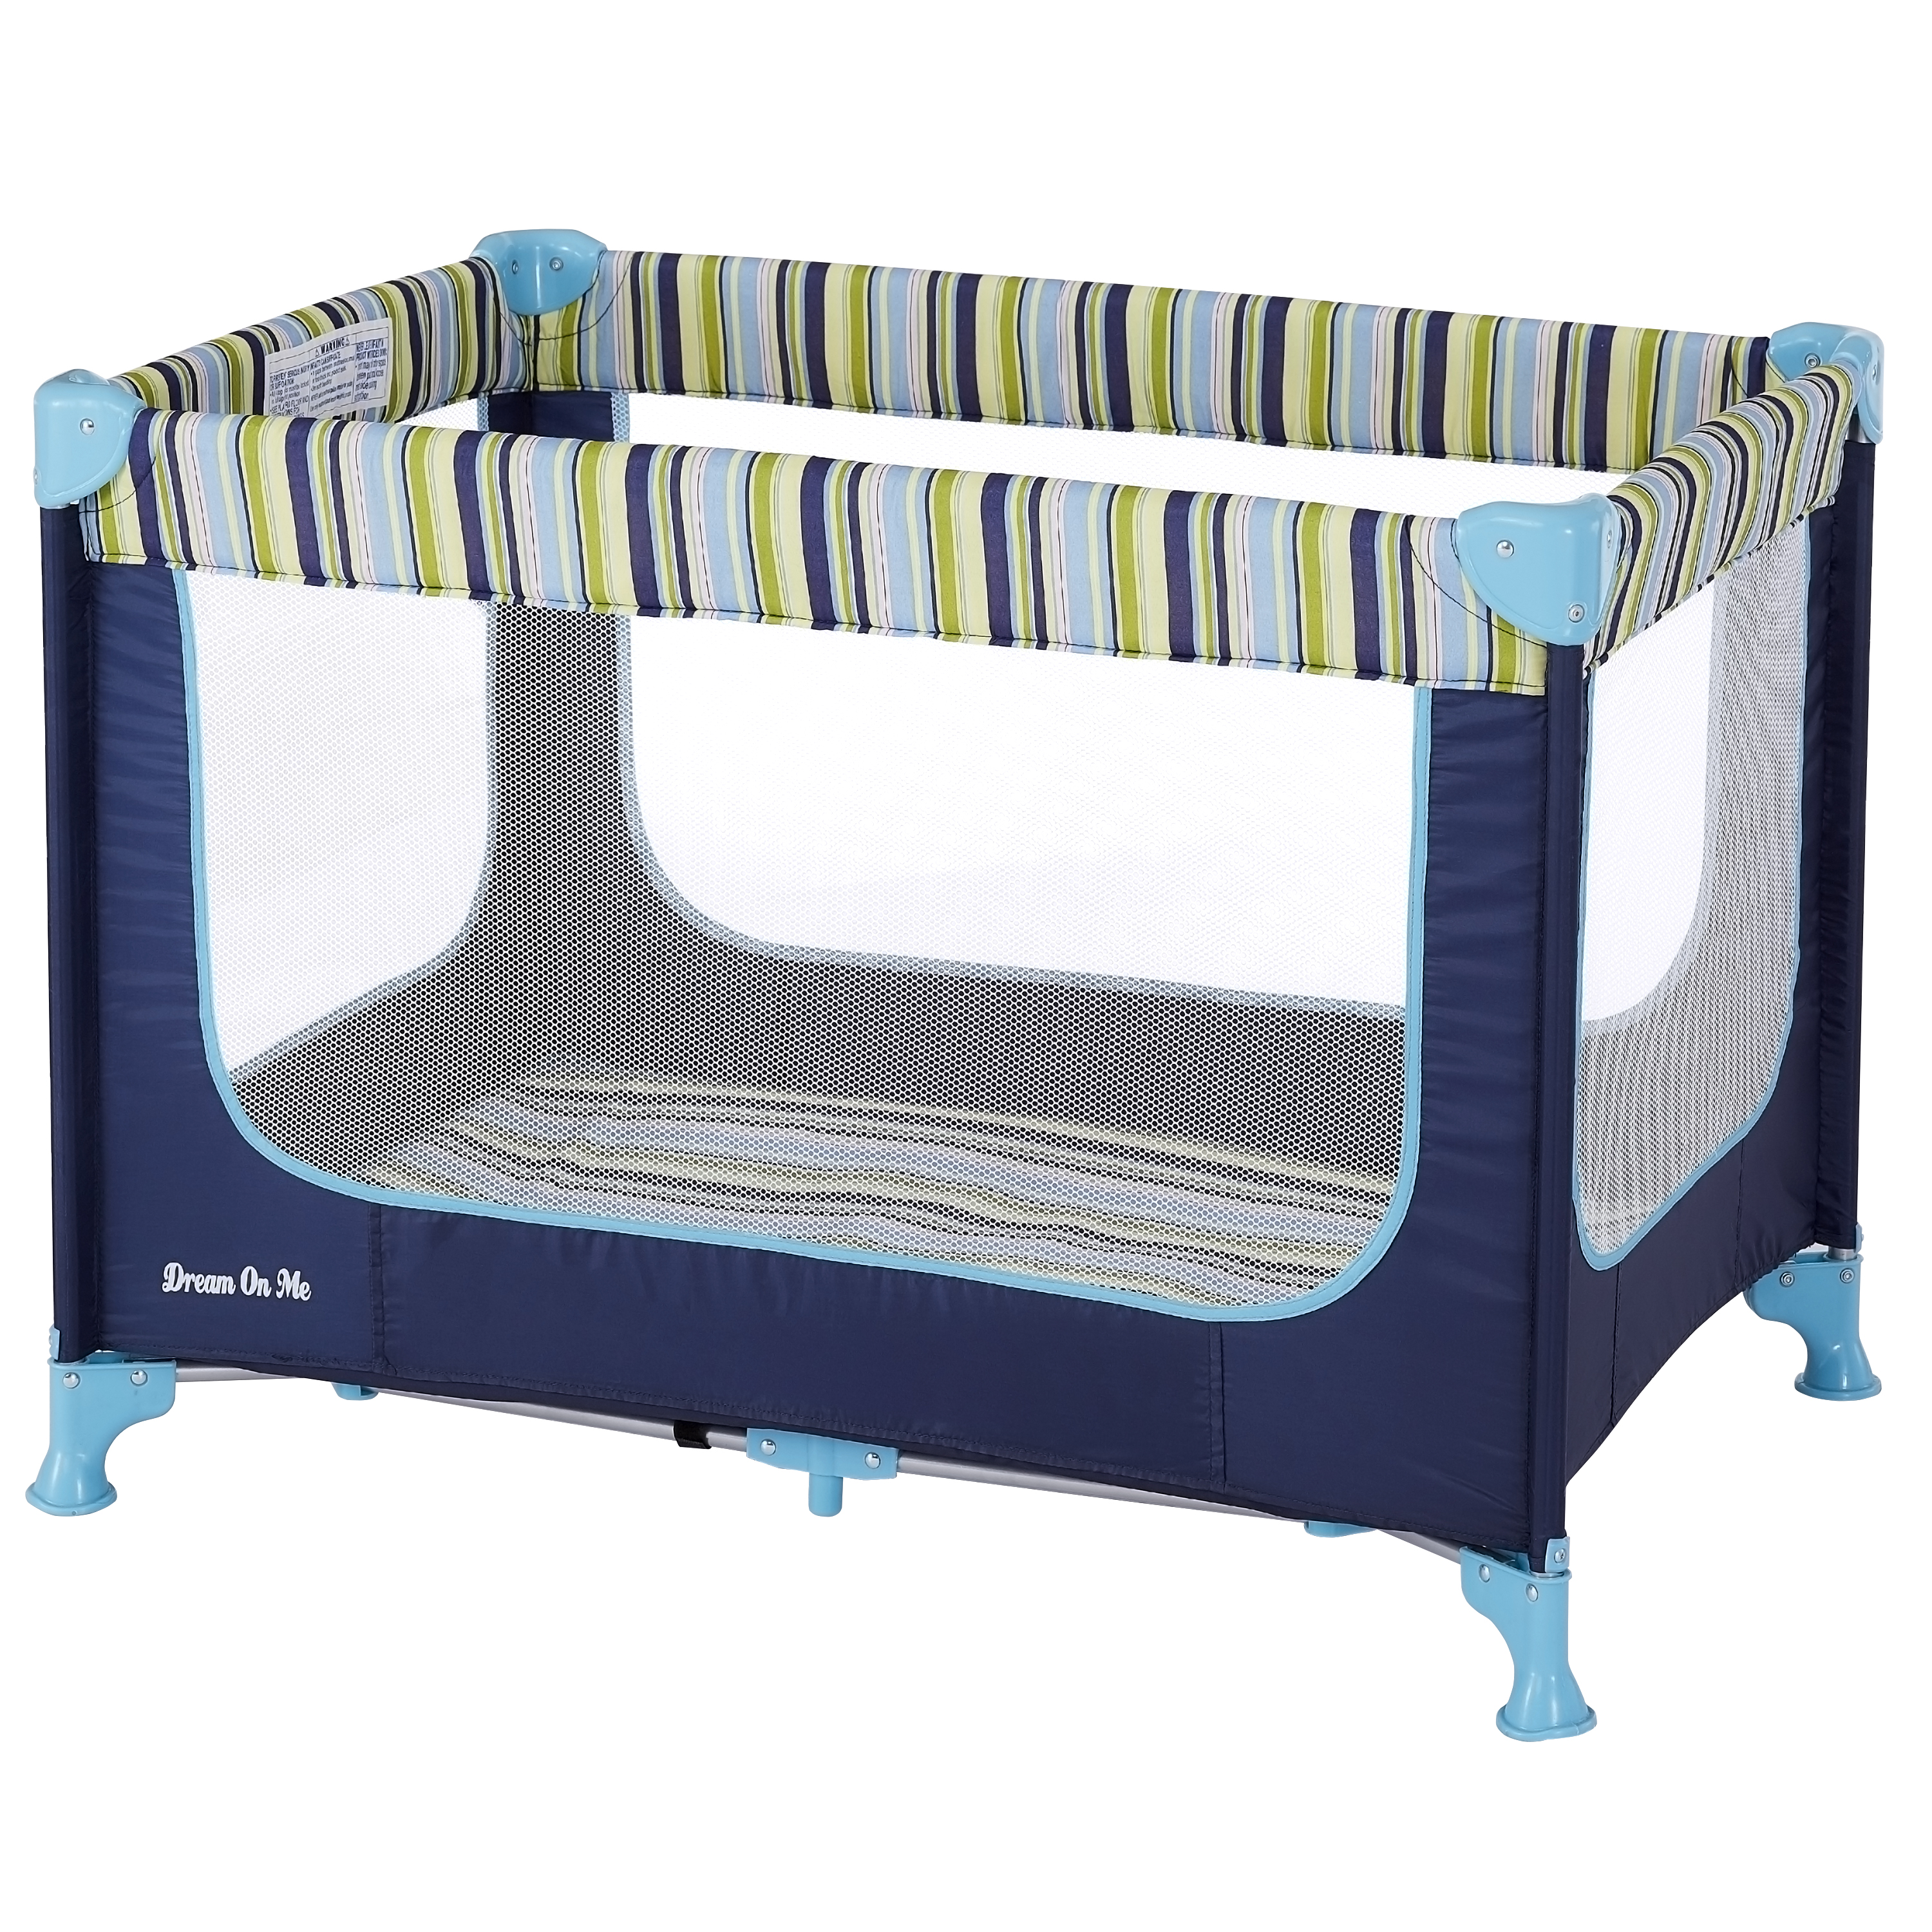 Dream On Me Zodiak Portable Play Yard - Navy